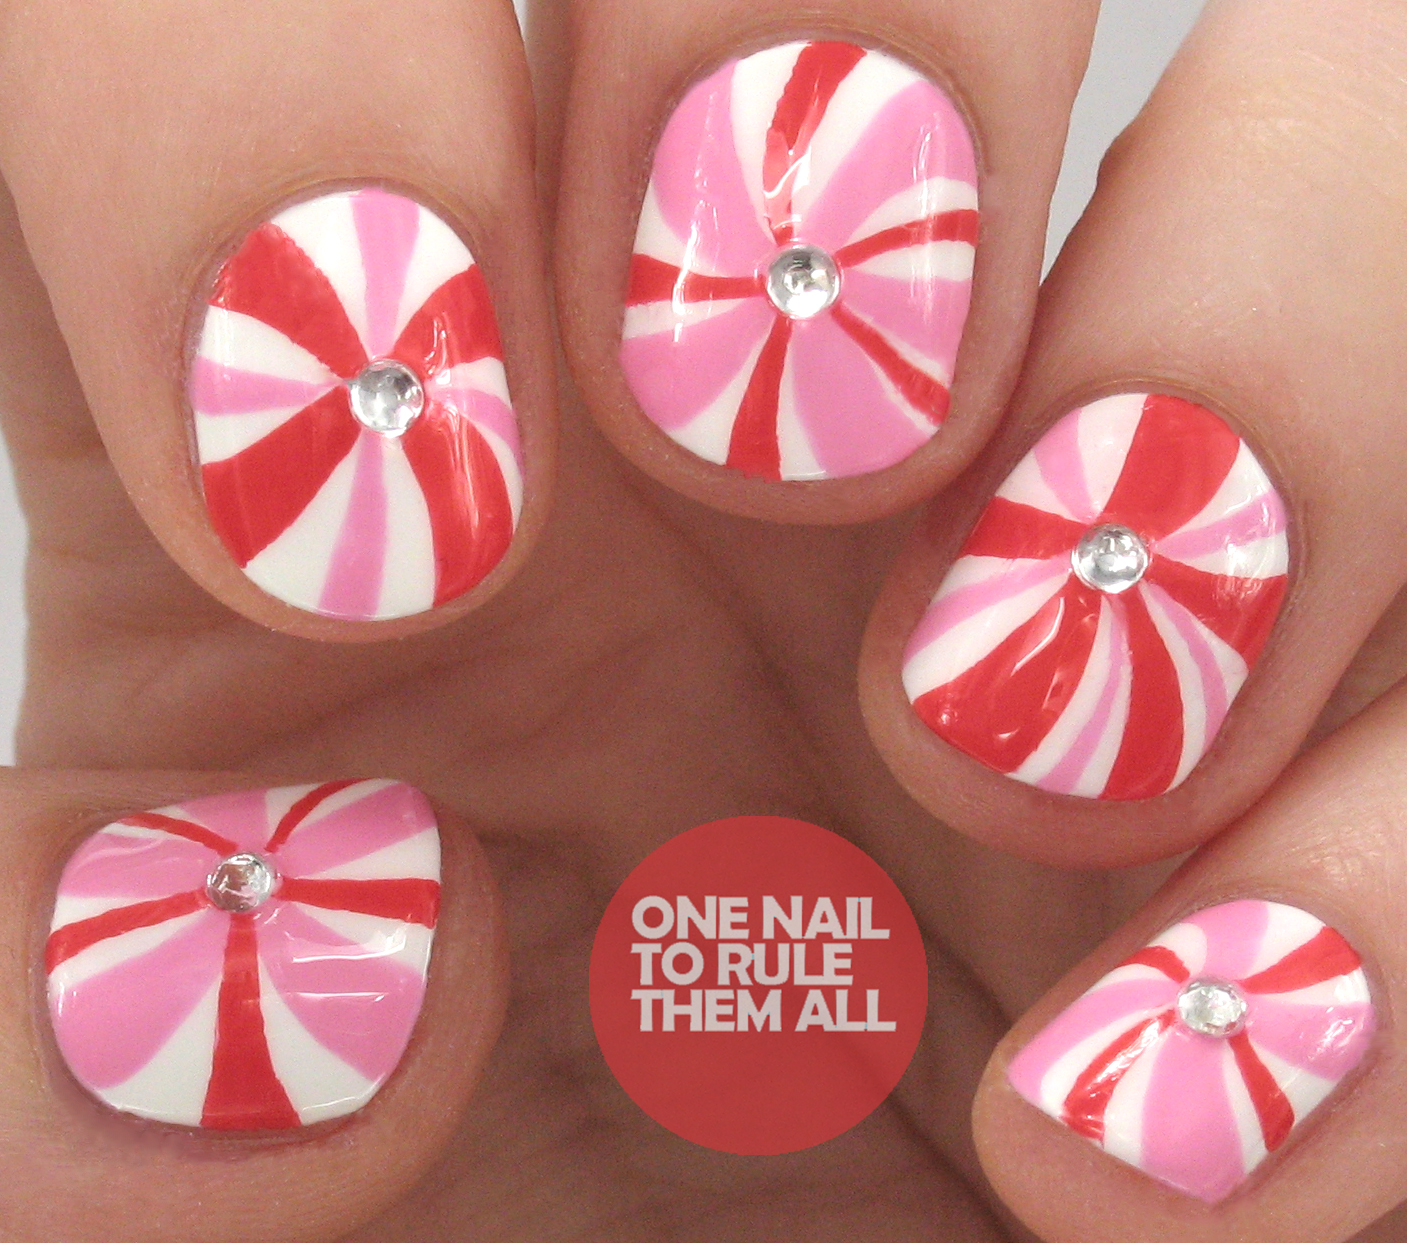 One Nail To Rule Them All: 2015